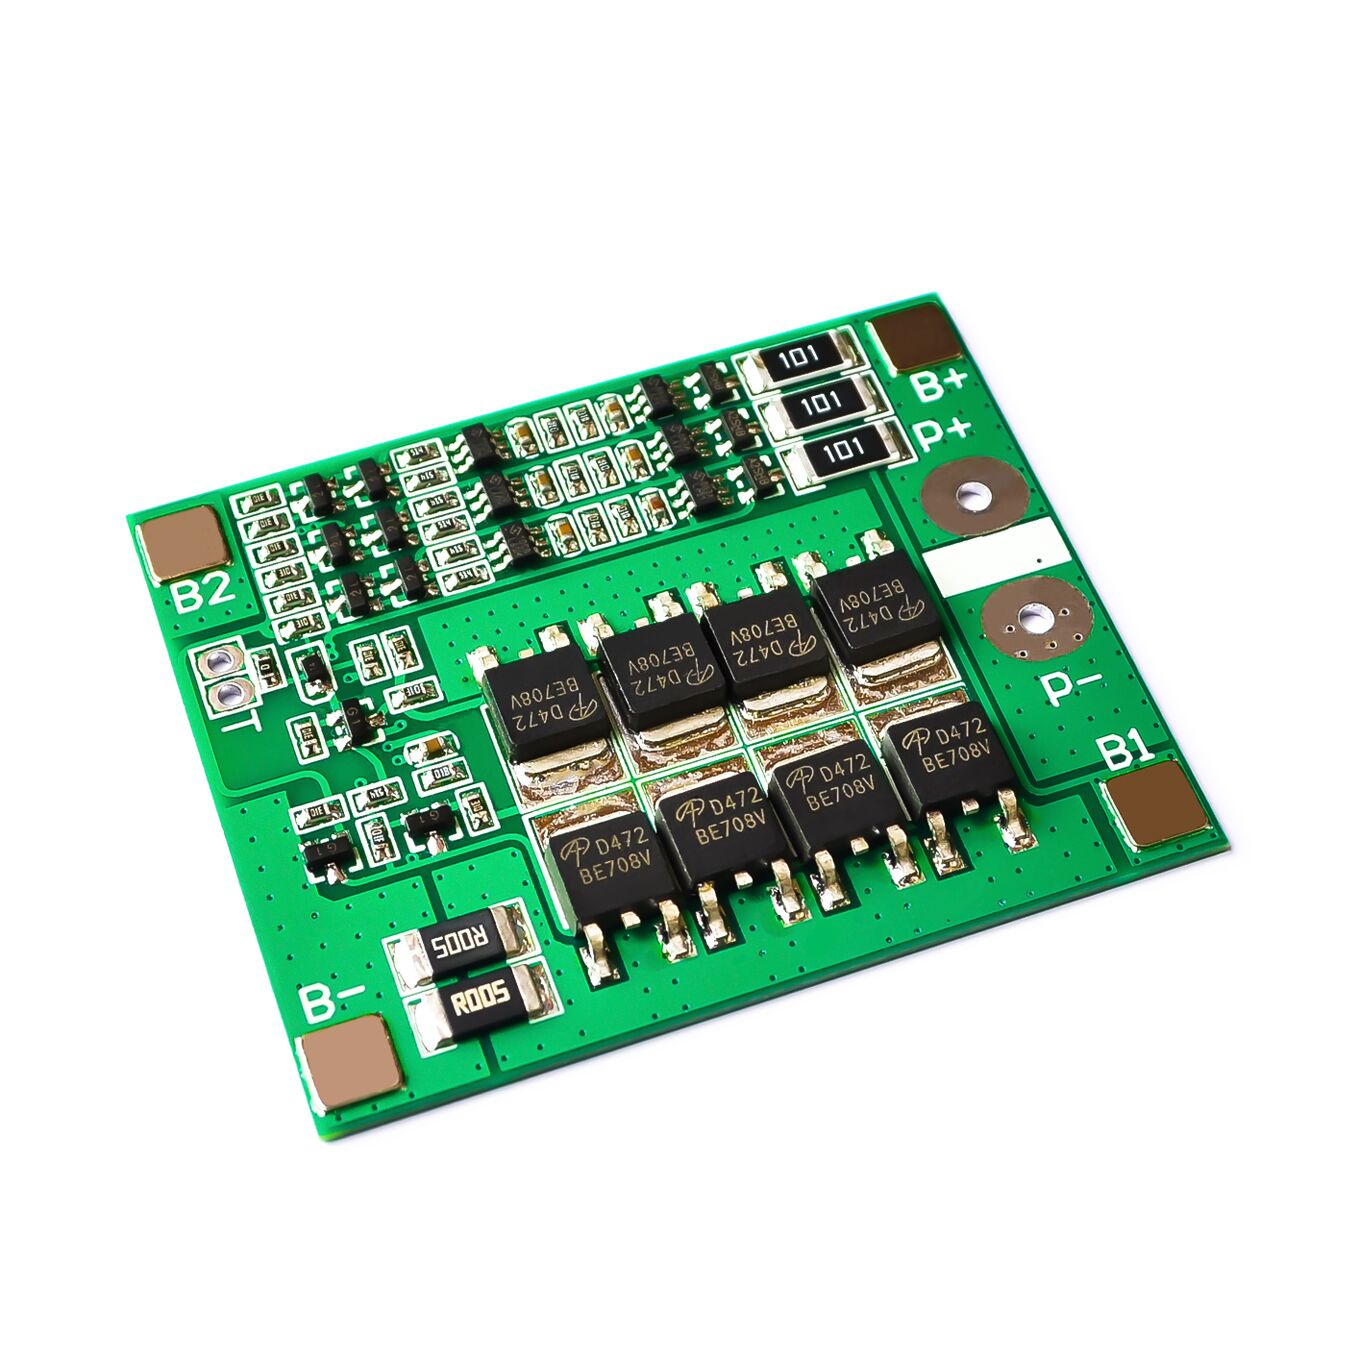 3s 40a 18650 Li-ion Lithium Battery Charger Protection Board Pcb Bms For Drill Motor 11.1v 12.6v Lipo Cell Module Batteries